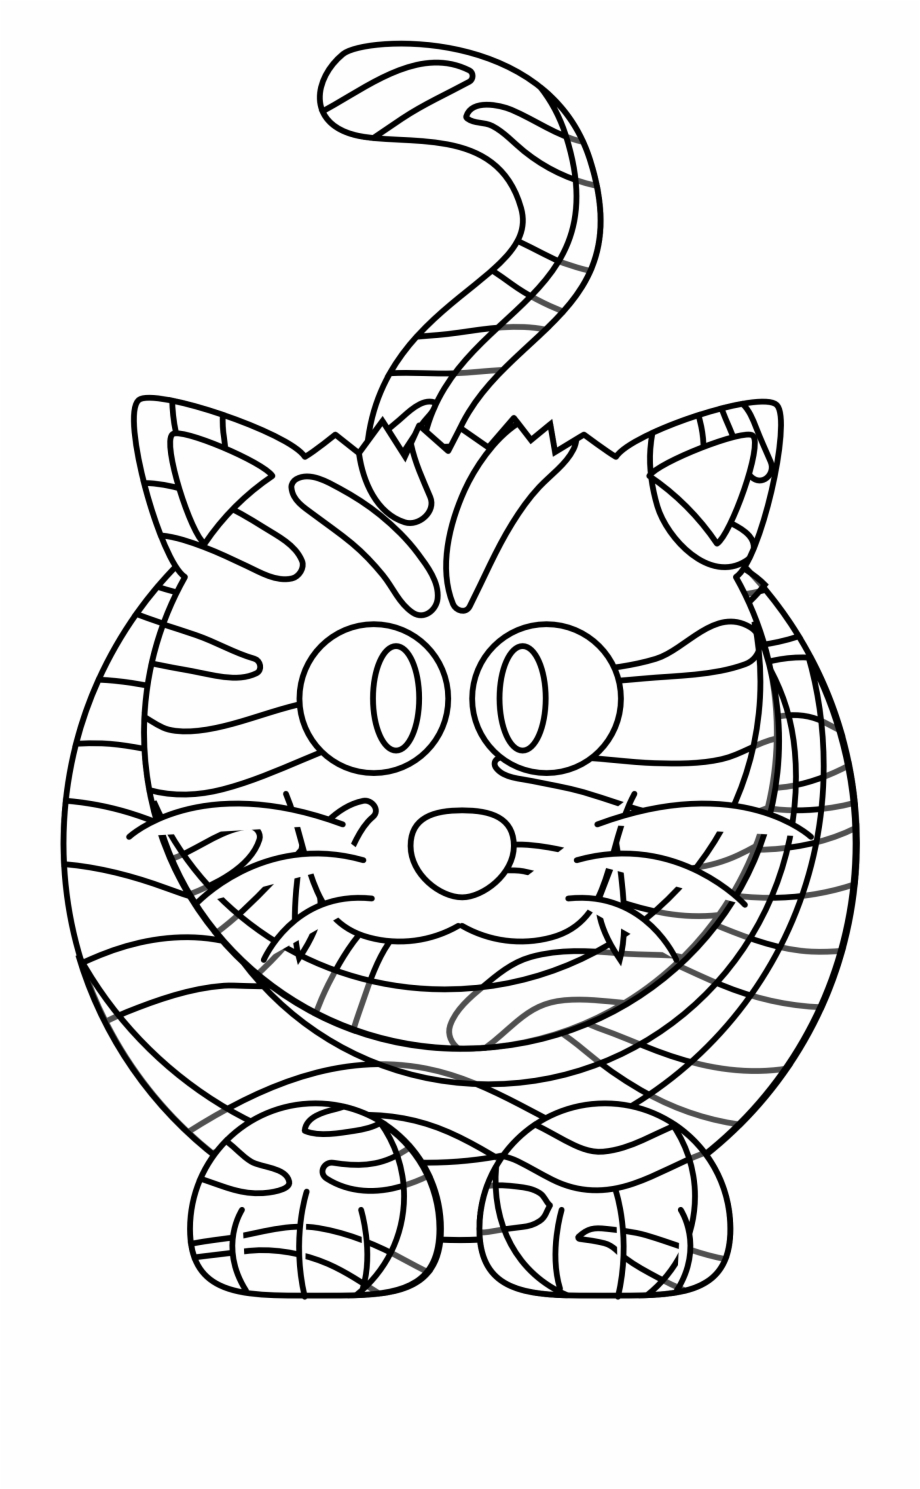 Tiger Black And White Tiger Clipart Black And White Cartoon Transparent Png Download 2330195 Vippng